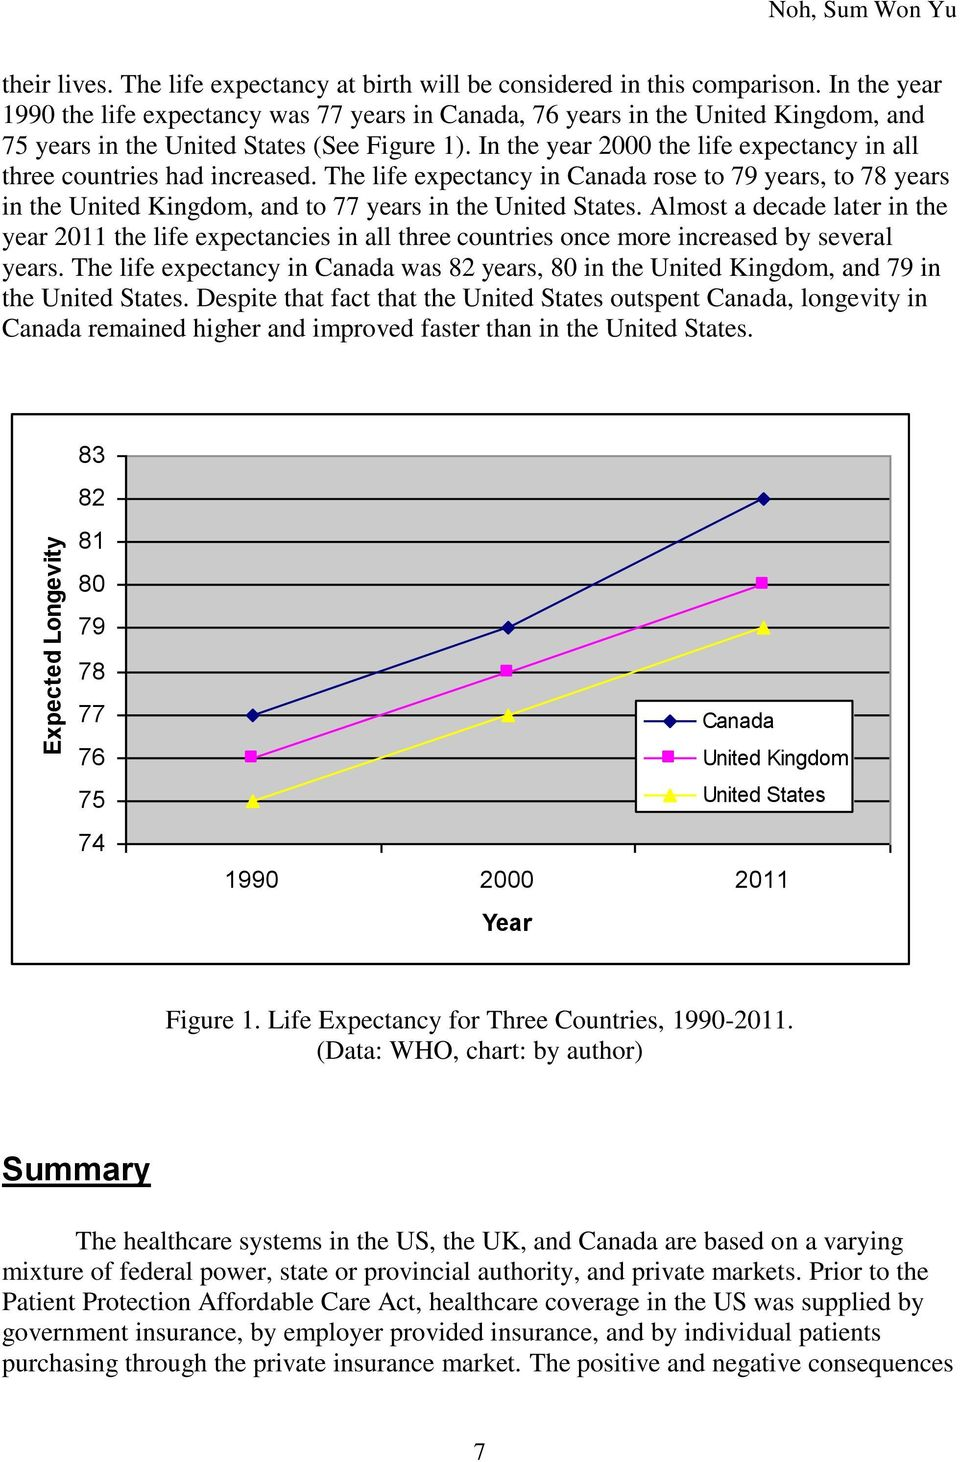 In the year 2000 the life expectancy in all three countries had increased. The life expectancy in Canada rose to 79 years, to 78 years in the United Kingdom, and to 77 years in the United States.